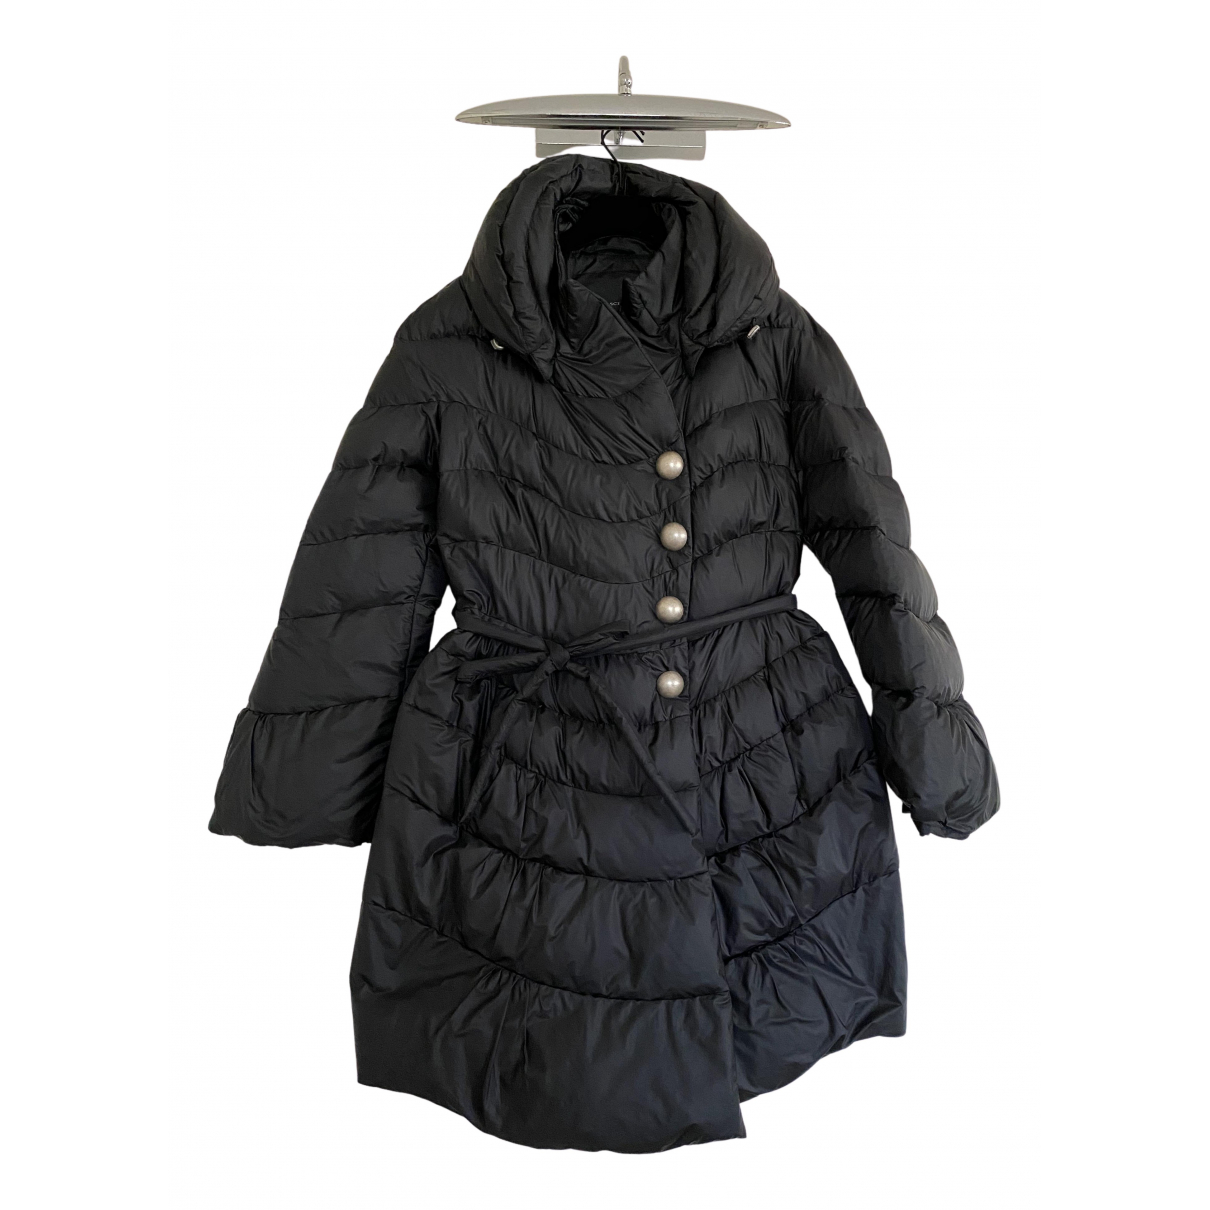 Ermanno Scervino \N Black coat for Women 44 IT